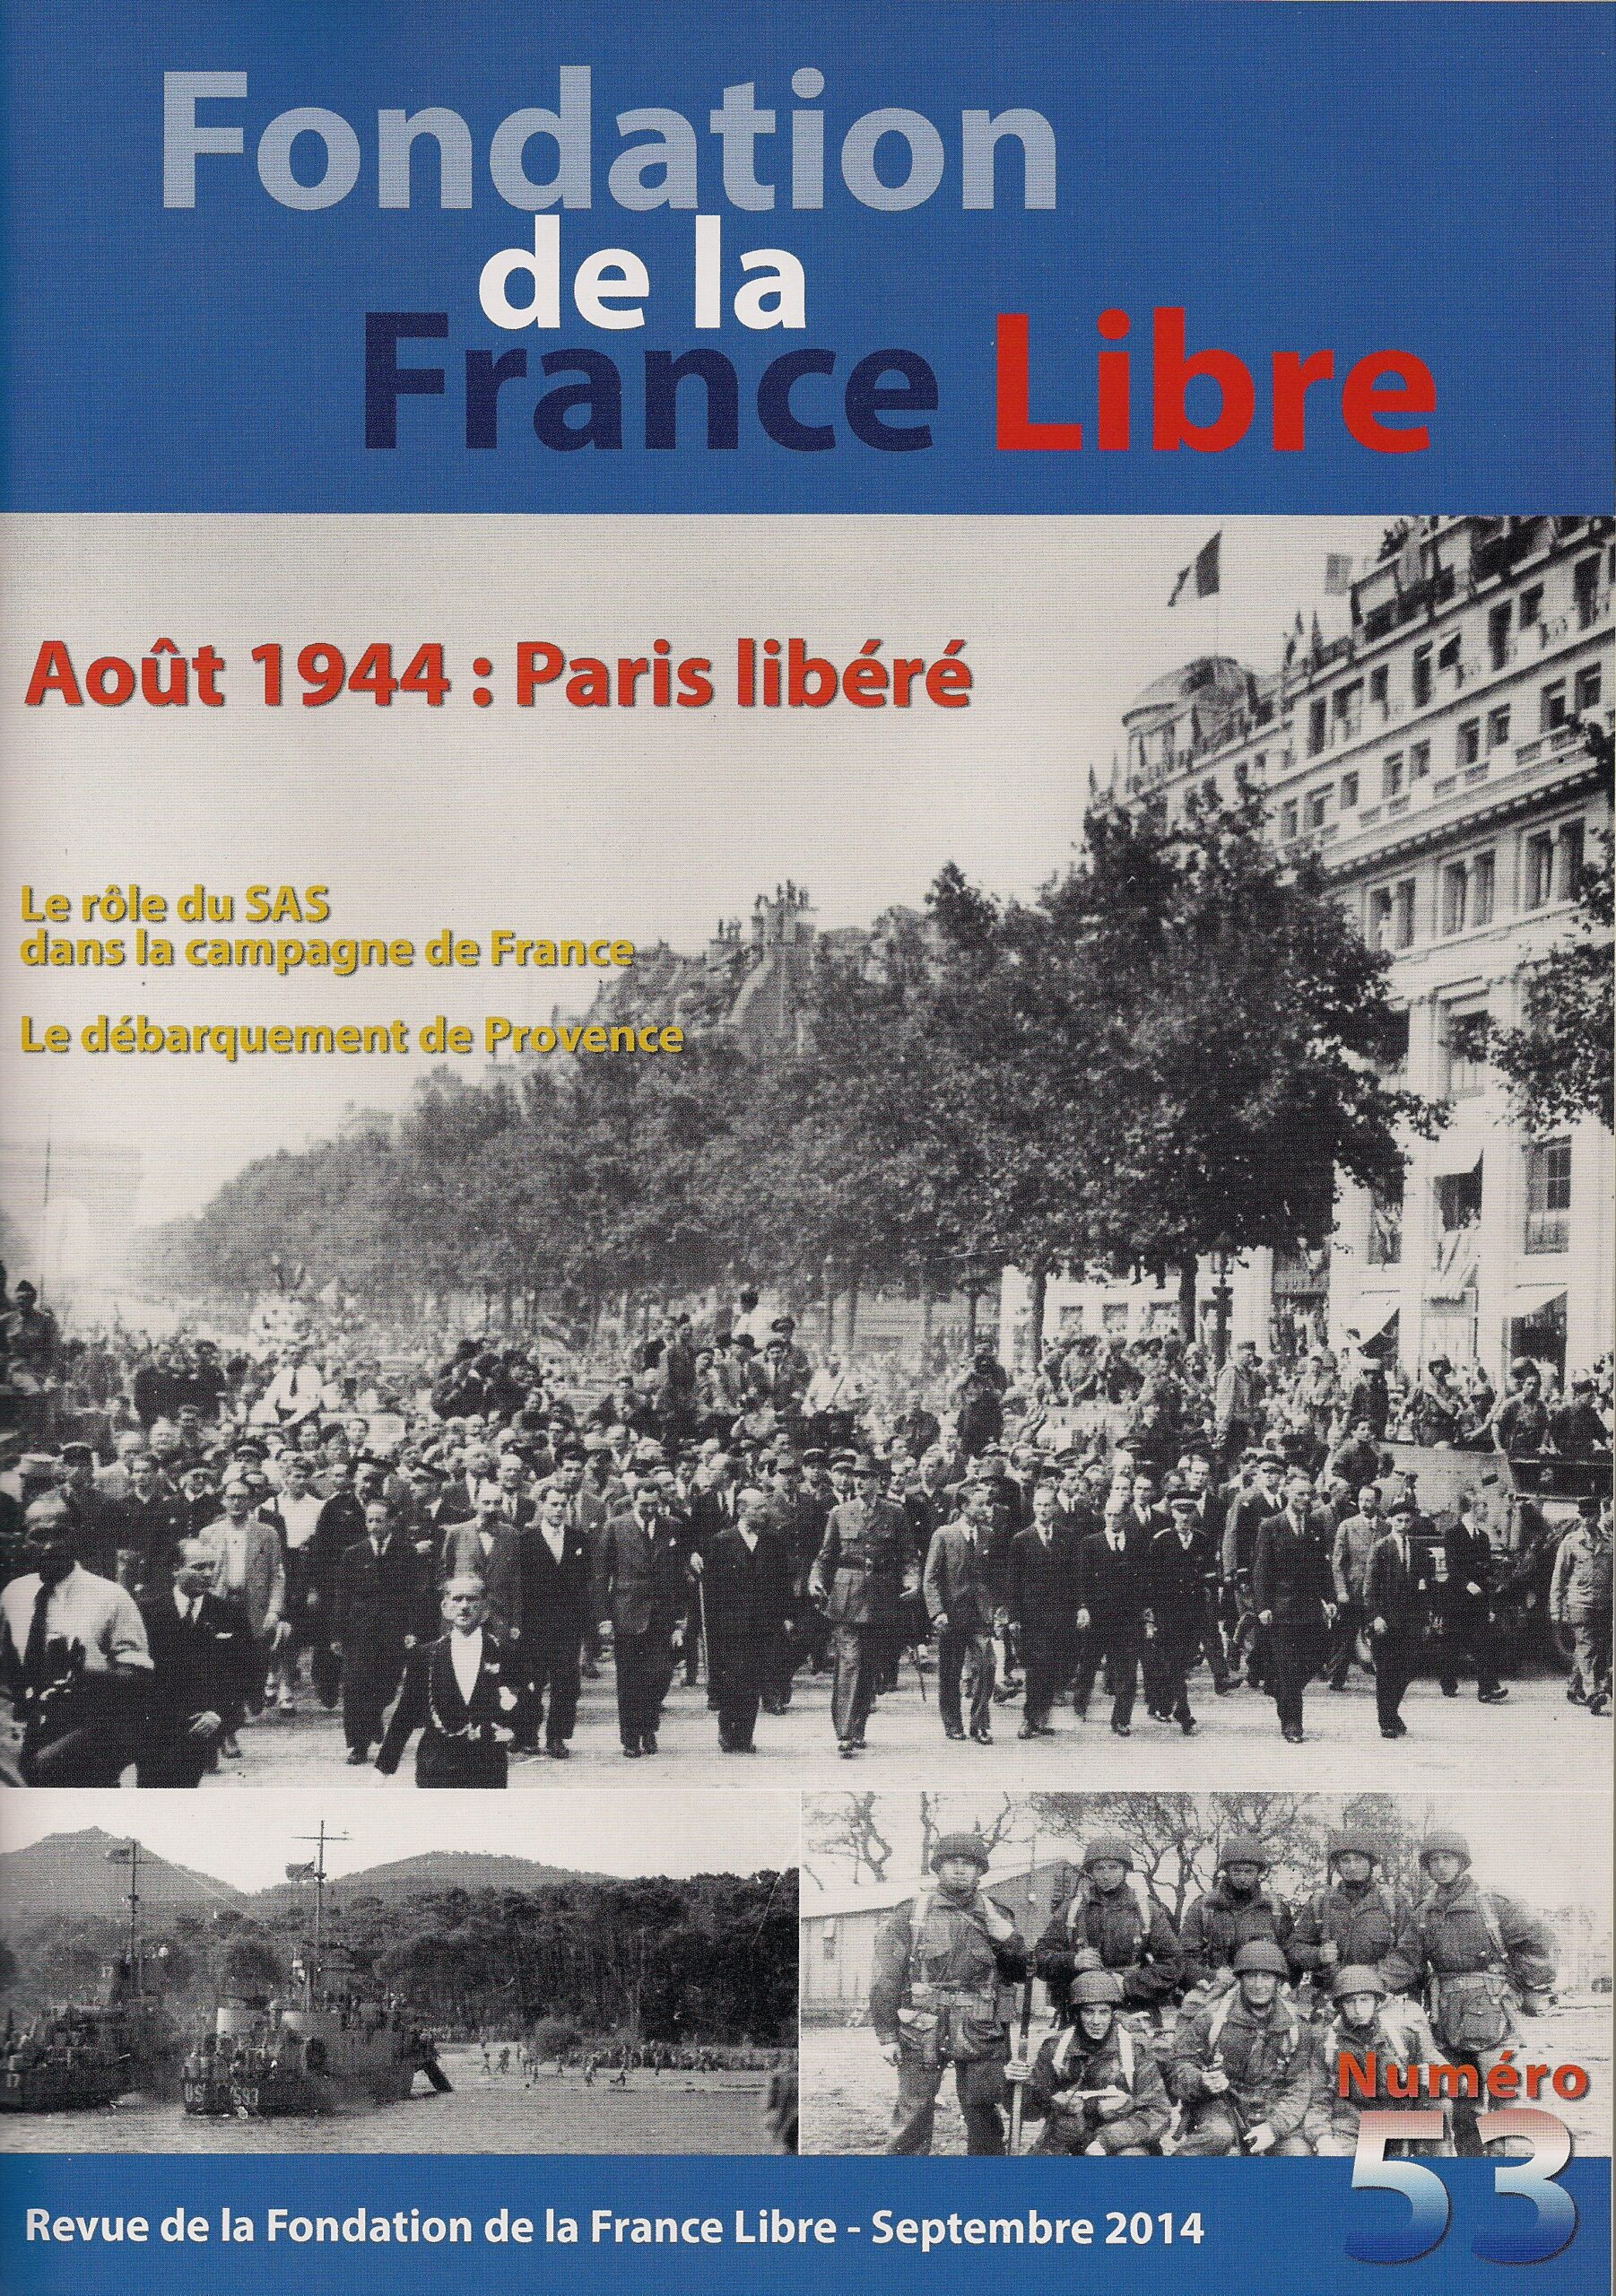 Fondation de la France Libre, n° 53, septembre 2014